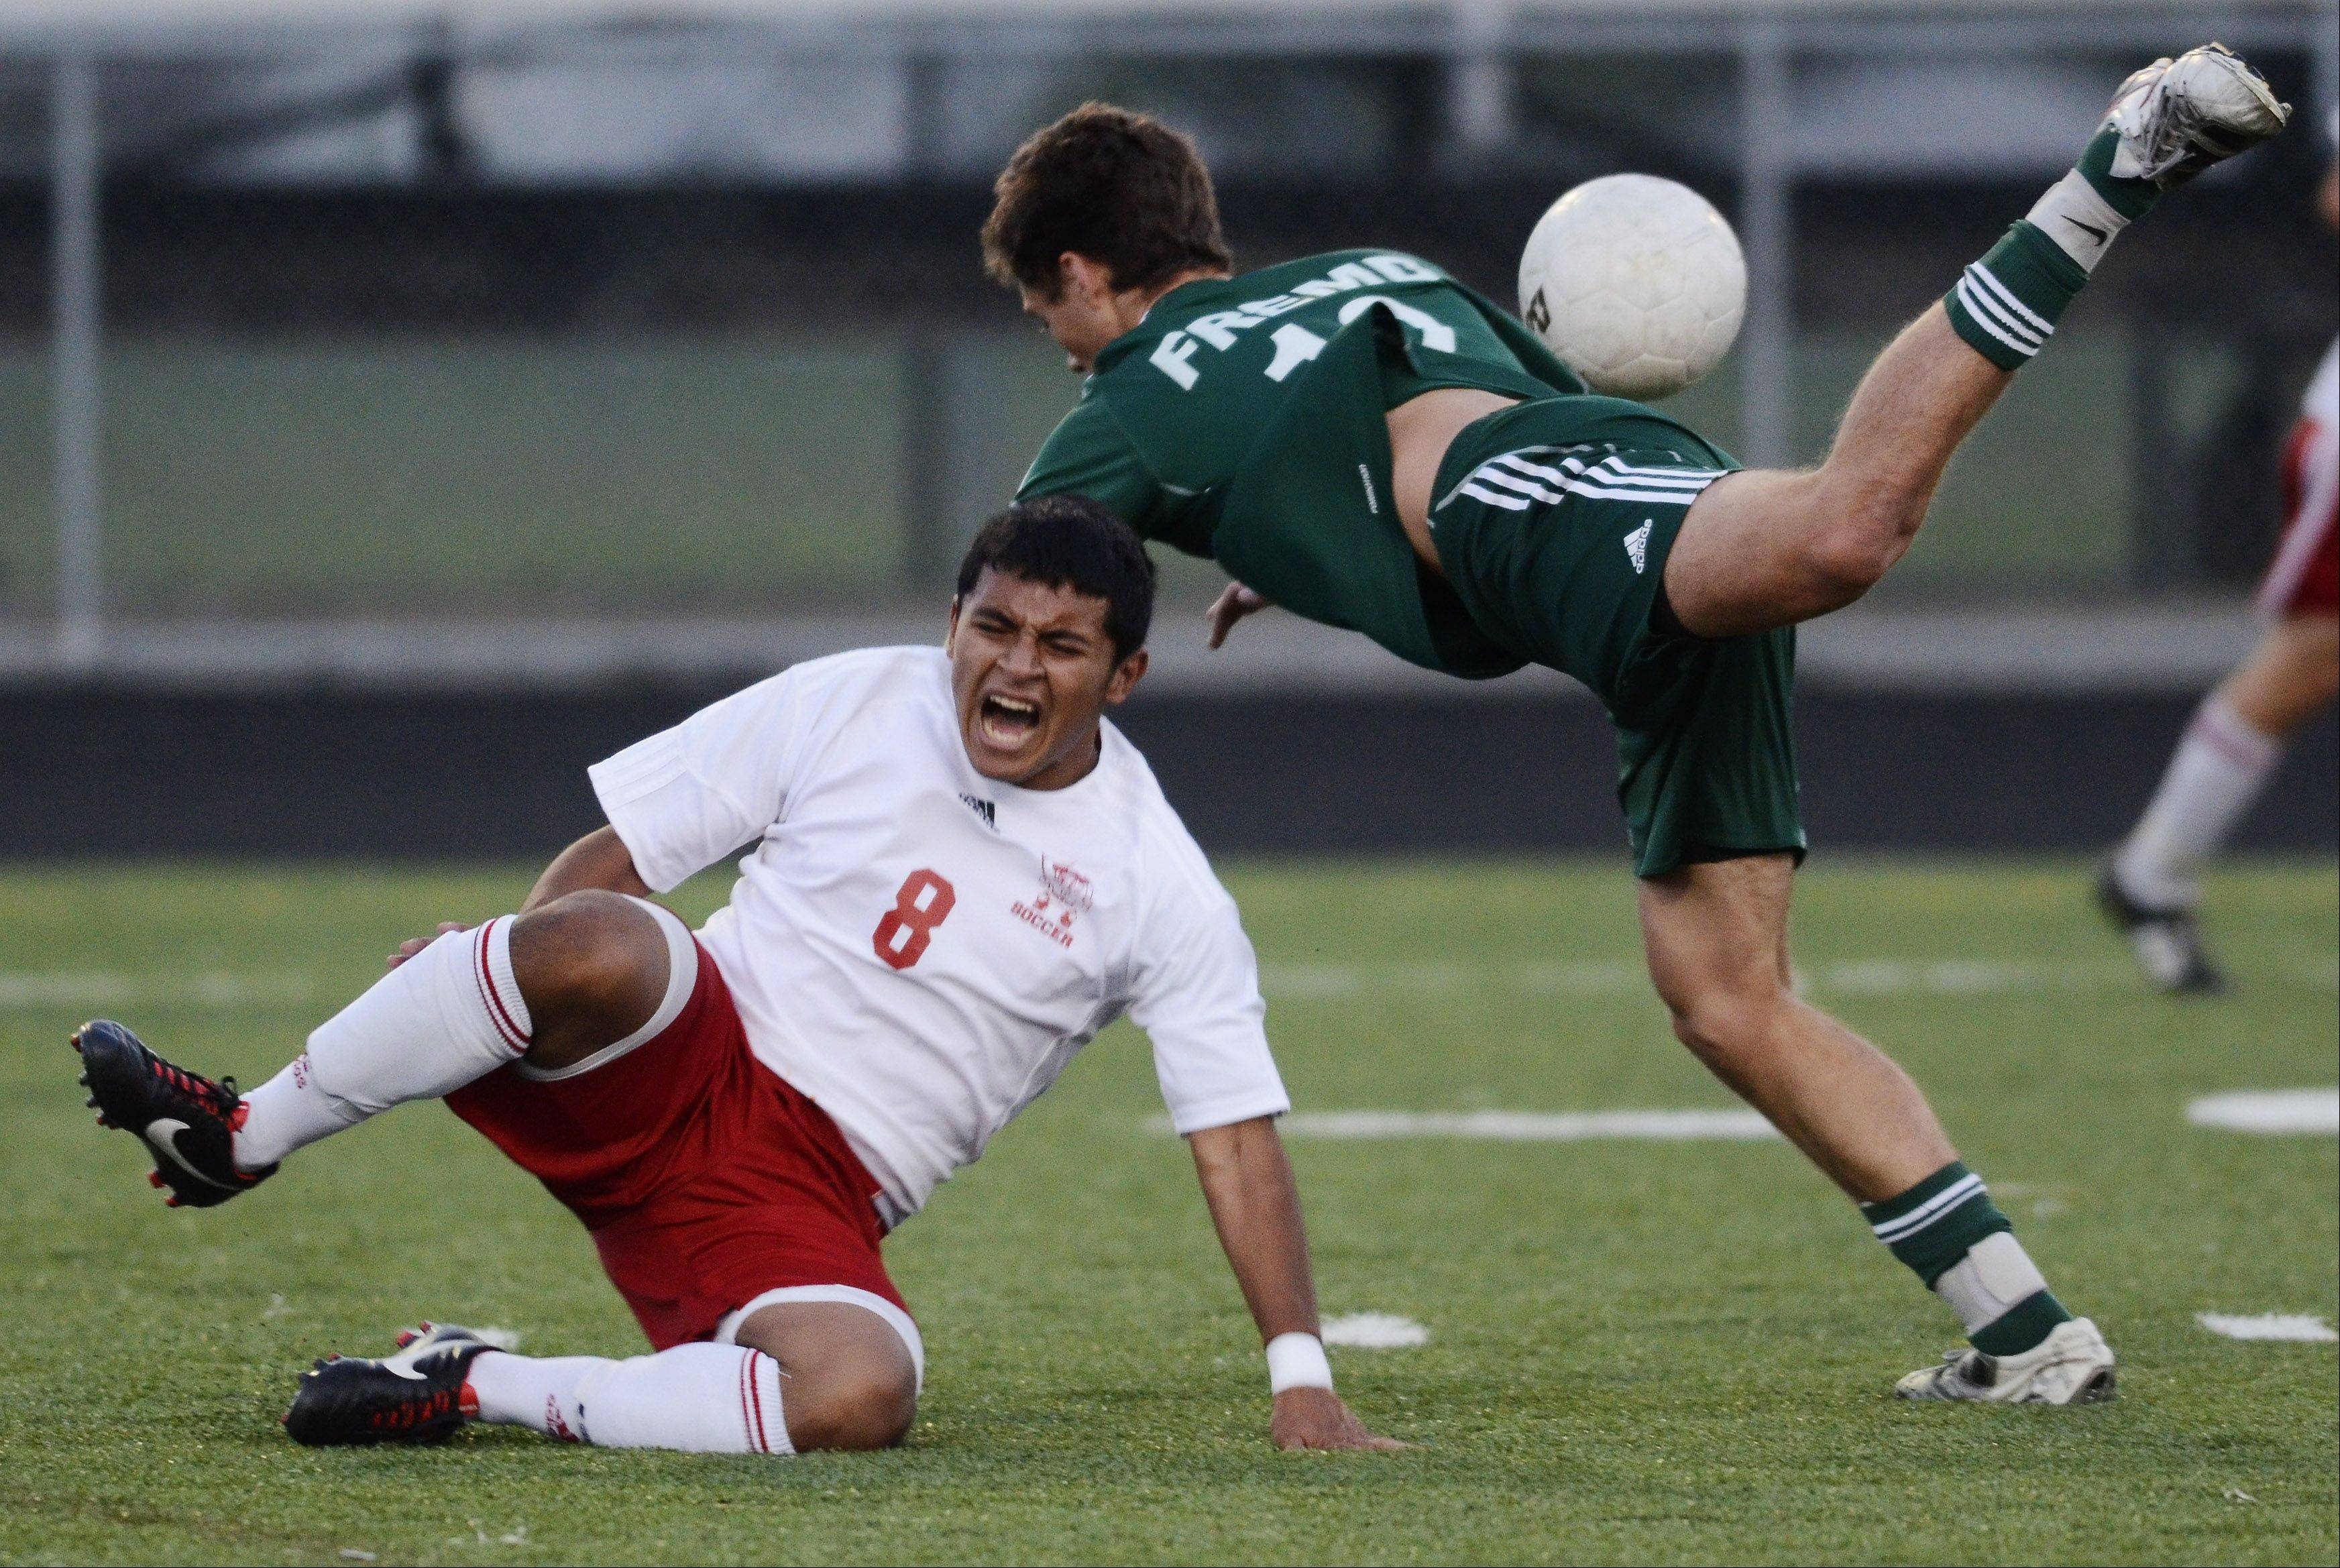 Palatine's Cesar Valdez, left, and Fremd's Michael Debellis make contact while in pursuit of the ball during Wednesday's game at Palatine.